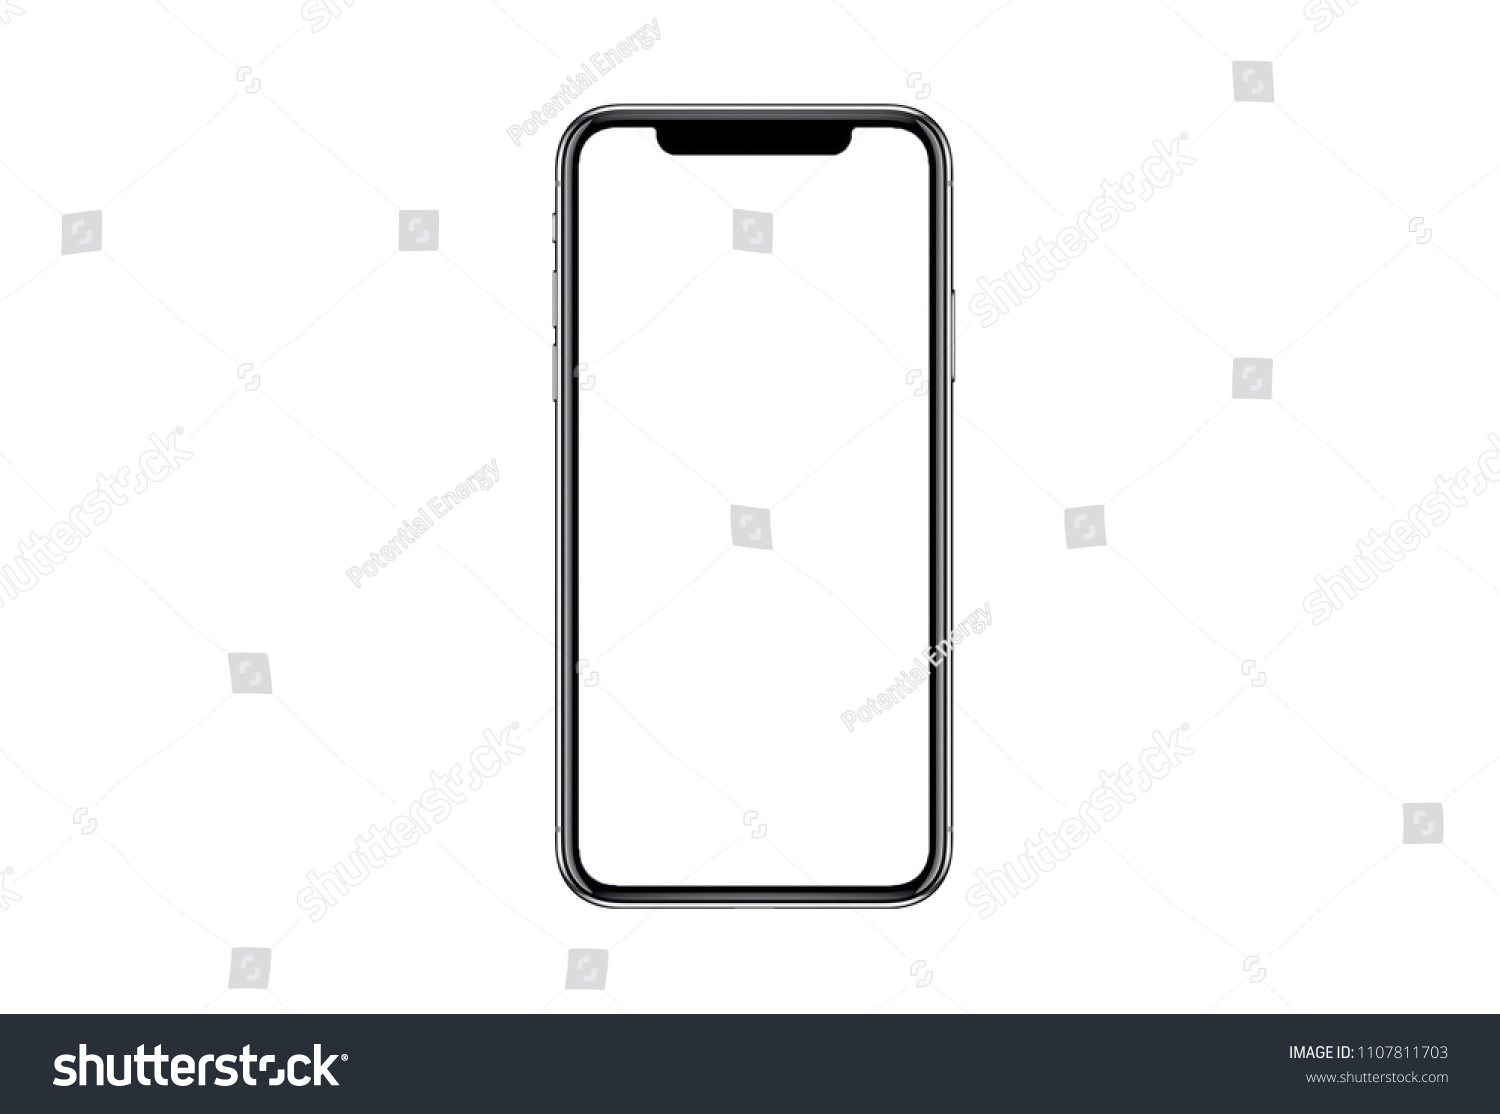 Smartphone similar to iphone xs max with blank white screen for Infographic Global Business Marketing investment Plan, mockup model similar to iPhonex isolated illustration of responsive web design.  #1107811703